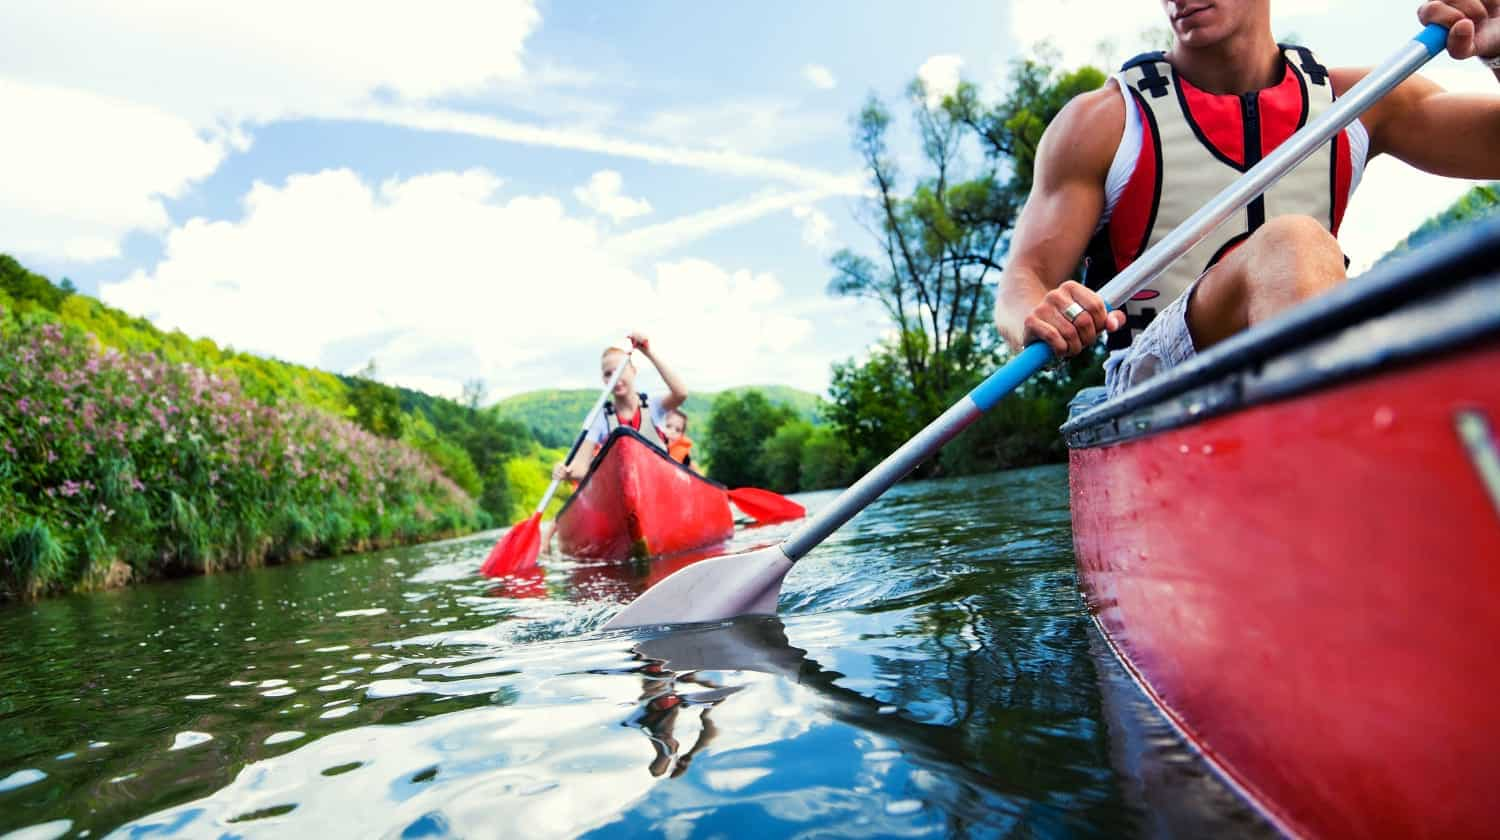 kayaking | Feature | New Technology Gadgets You Need For Summer | cool tech gadgets | new tech gadgets